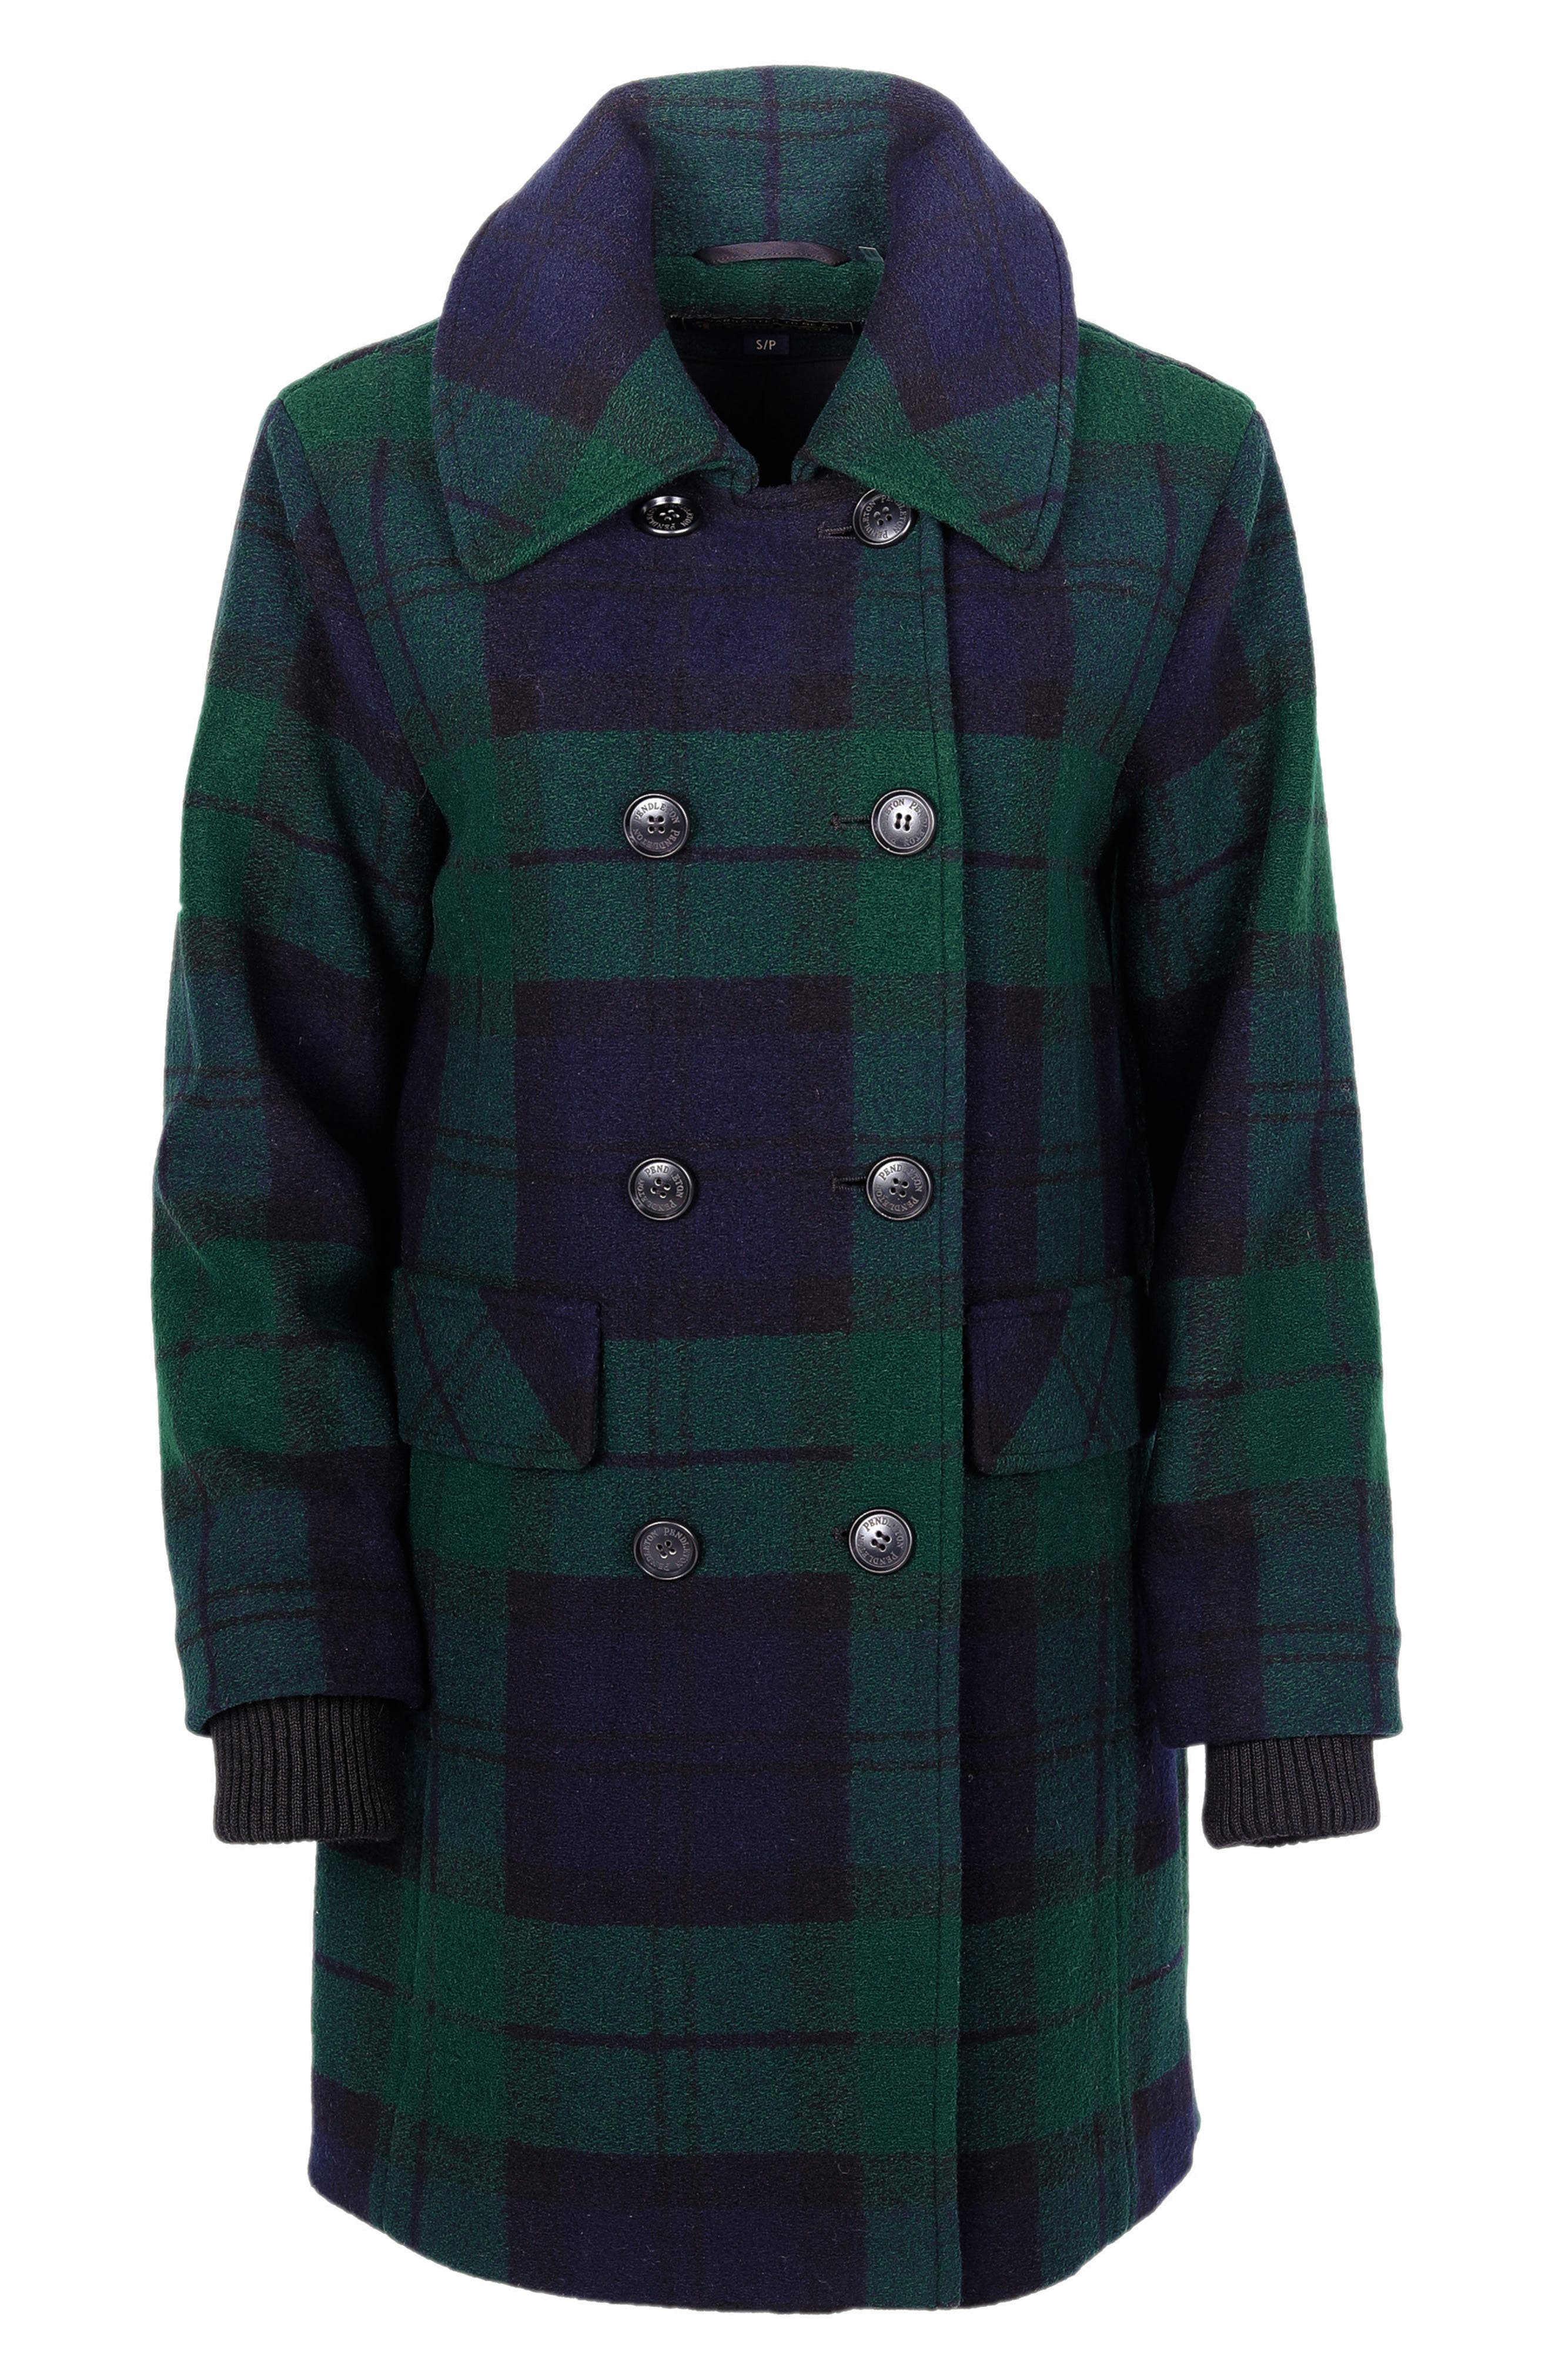 1940s Style Coats and Jackets for Sale Womens Pendleton Forest Park Double Breasted Wool Blend Coat $229.90 AT vintagedancer.com